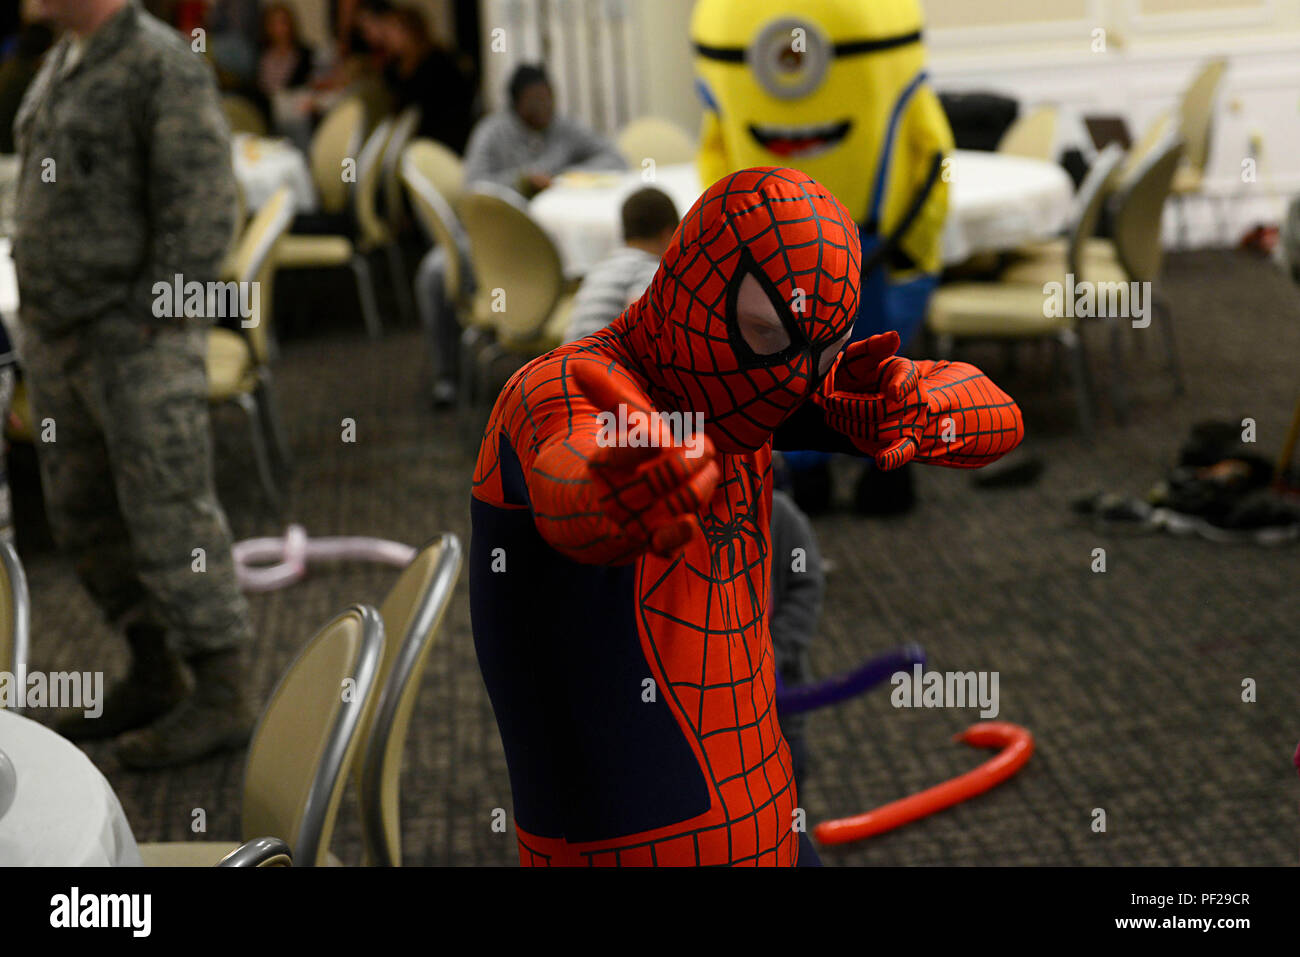 A volunteer dressed as Spiderman poses for a photo during a deployed family dinner at Shaw Air Force Base, S.C., Feb. 22, 2016. Children of deployed service members were given the opportunity to do various activities including: playing with cartoon characters, playing in a bounce house, face painting, and balloon sword fights. (U.S. Air Force photo by Airman 1st Class Christopher Maldonado) - Stock Image